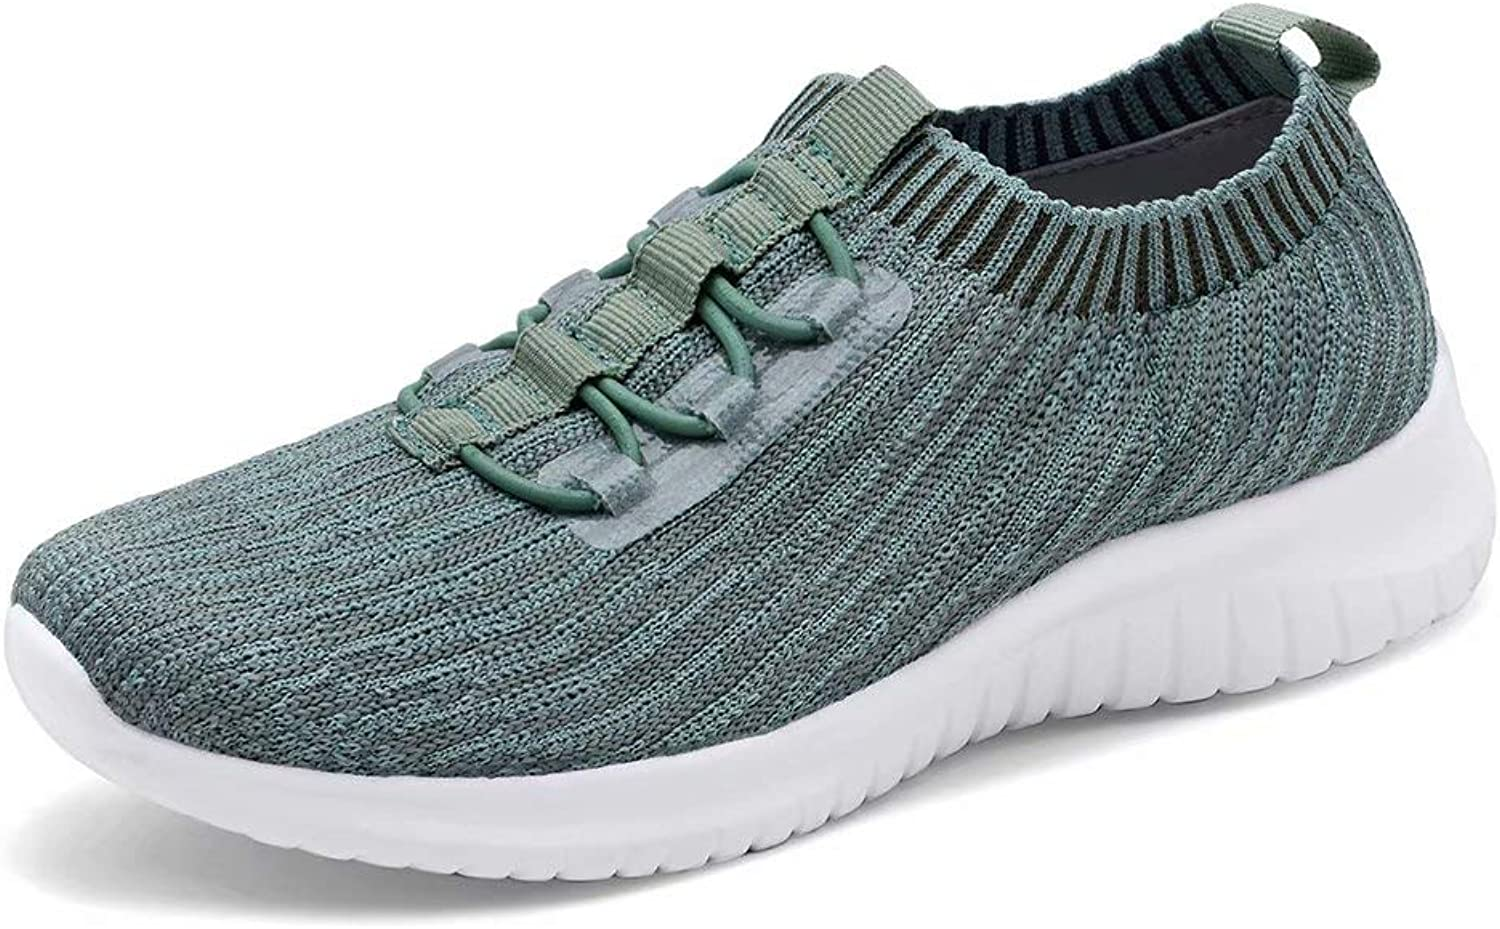 Konhill Women's Lightweight Athletic Running shoes Walking Casual Knit Workout Sneakers, Green, 37